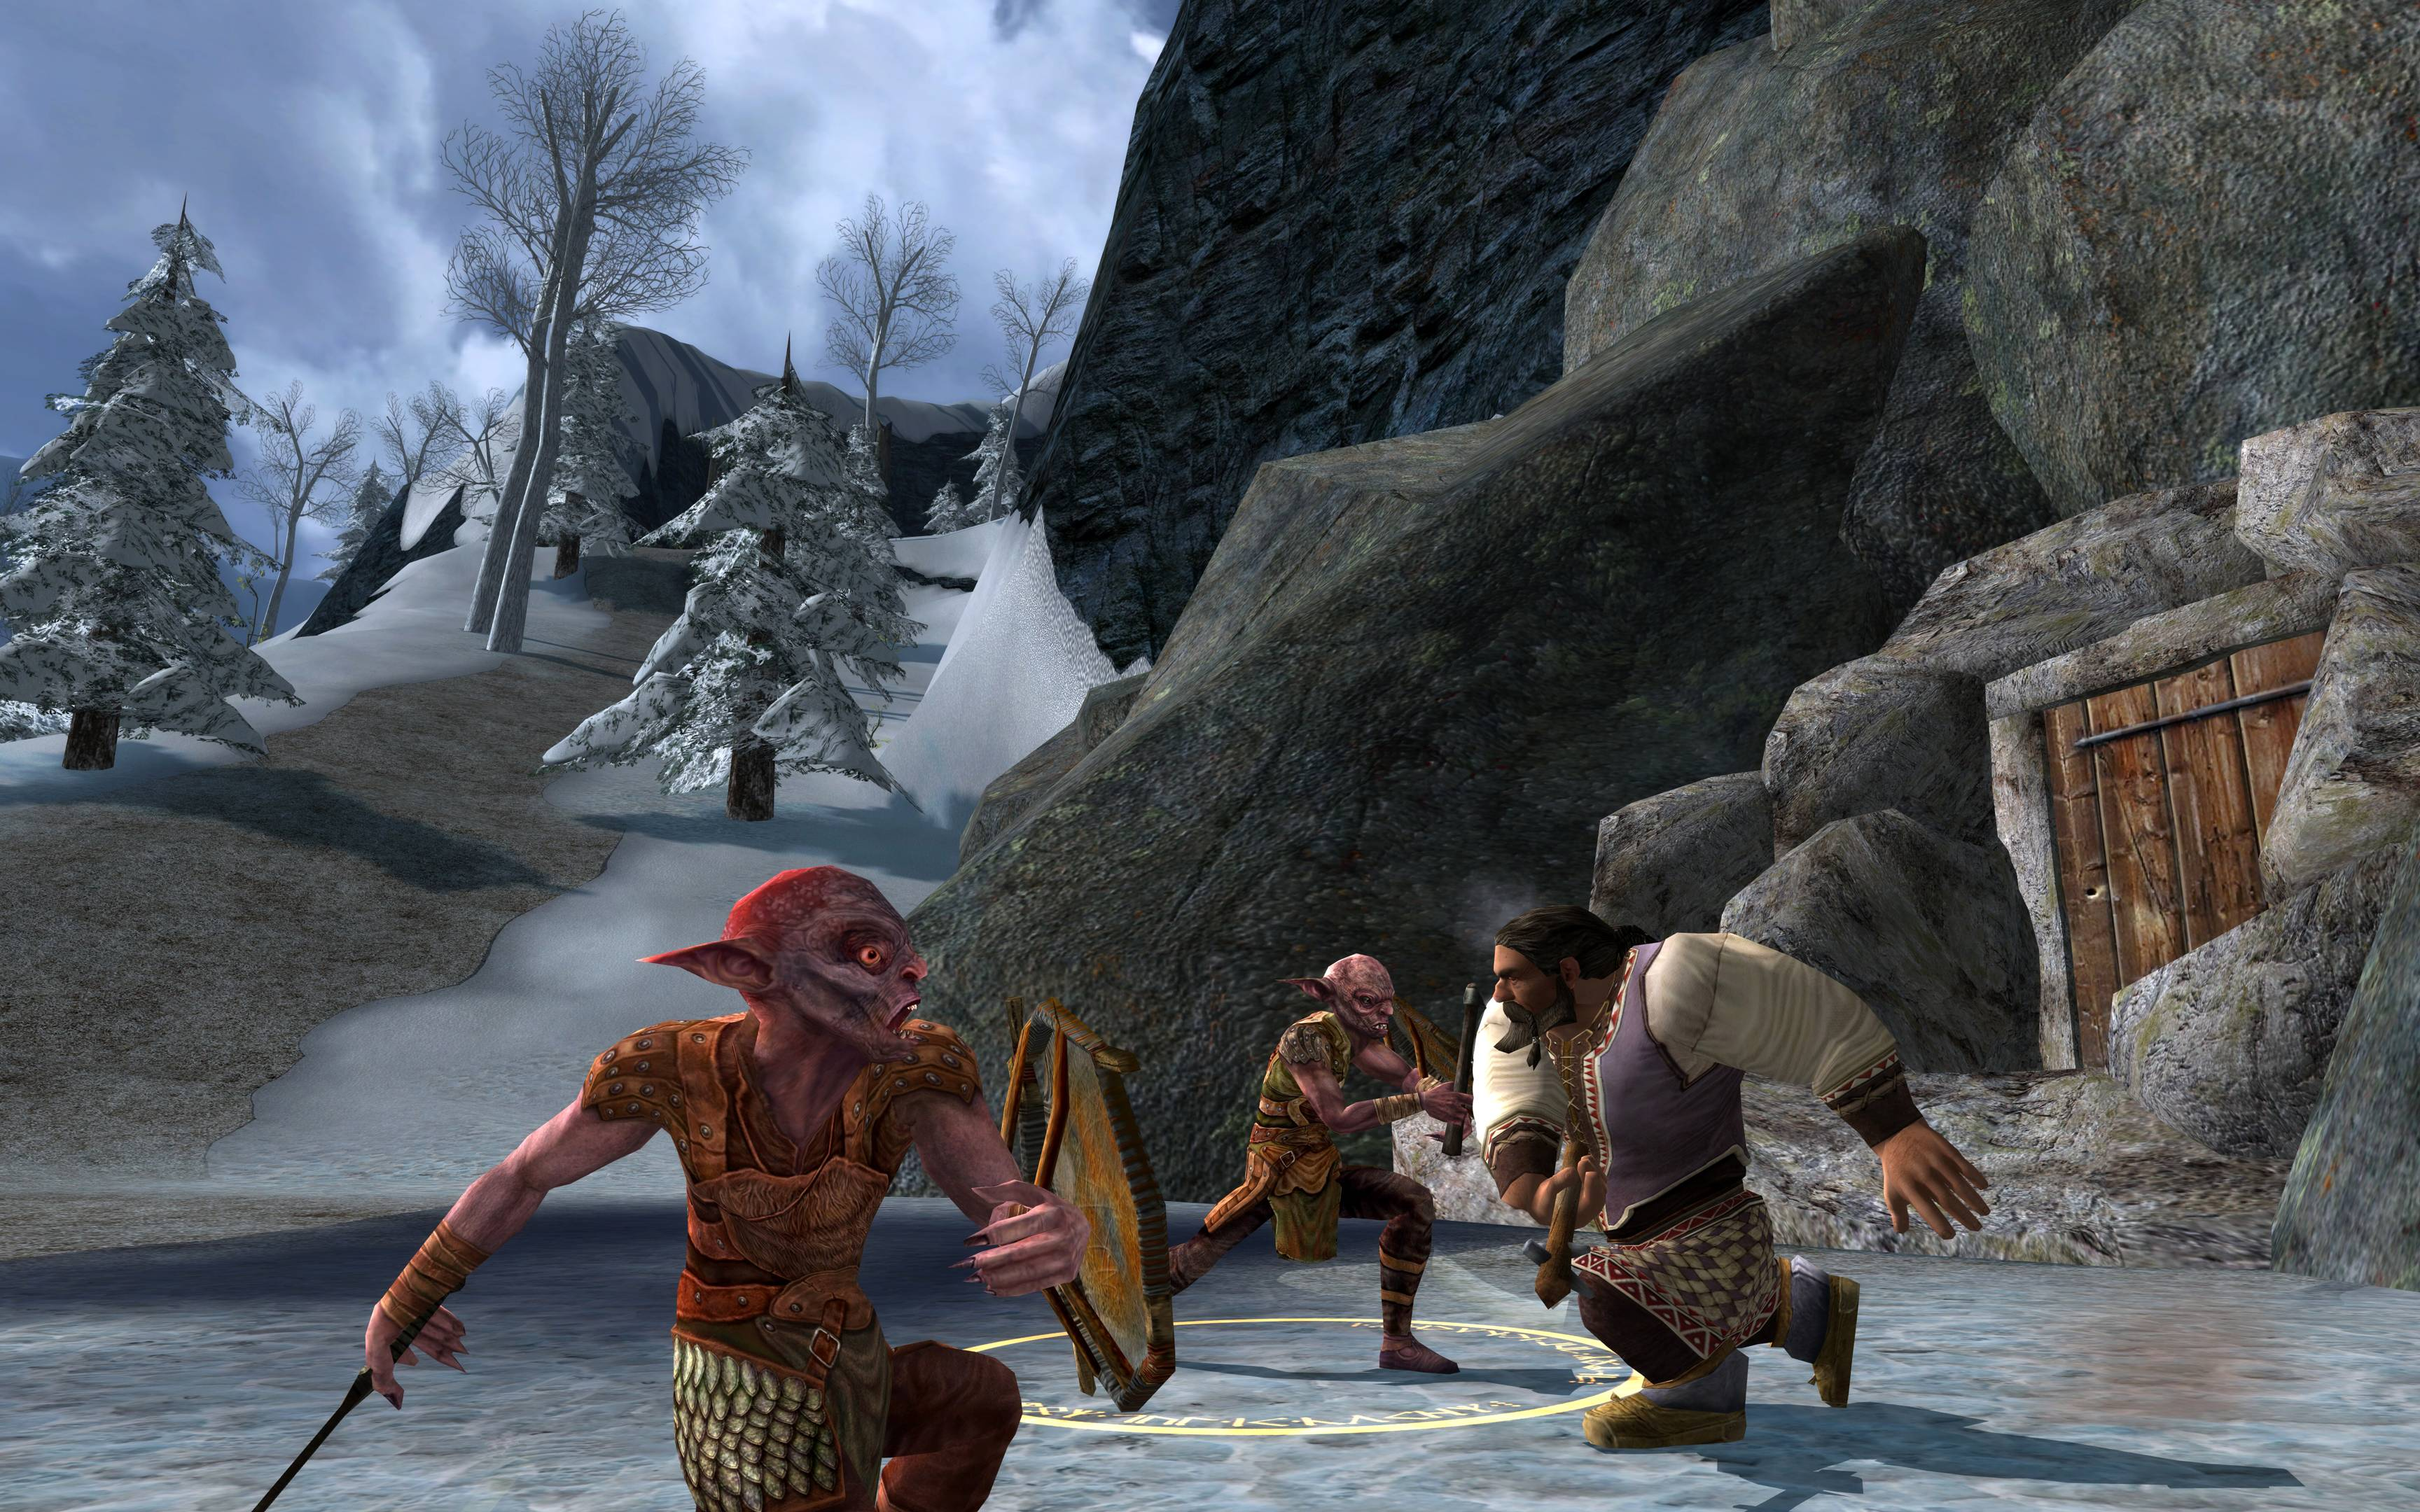 The Lord of the Rings Online: Mines of Moria